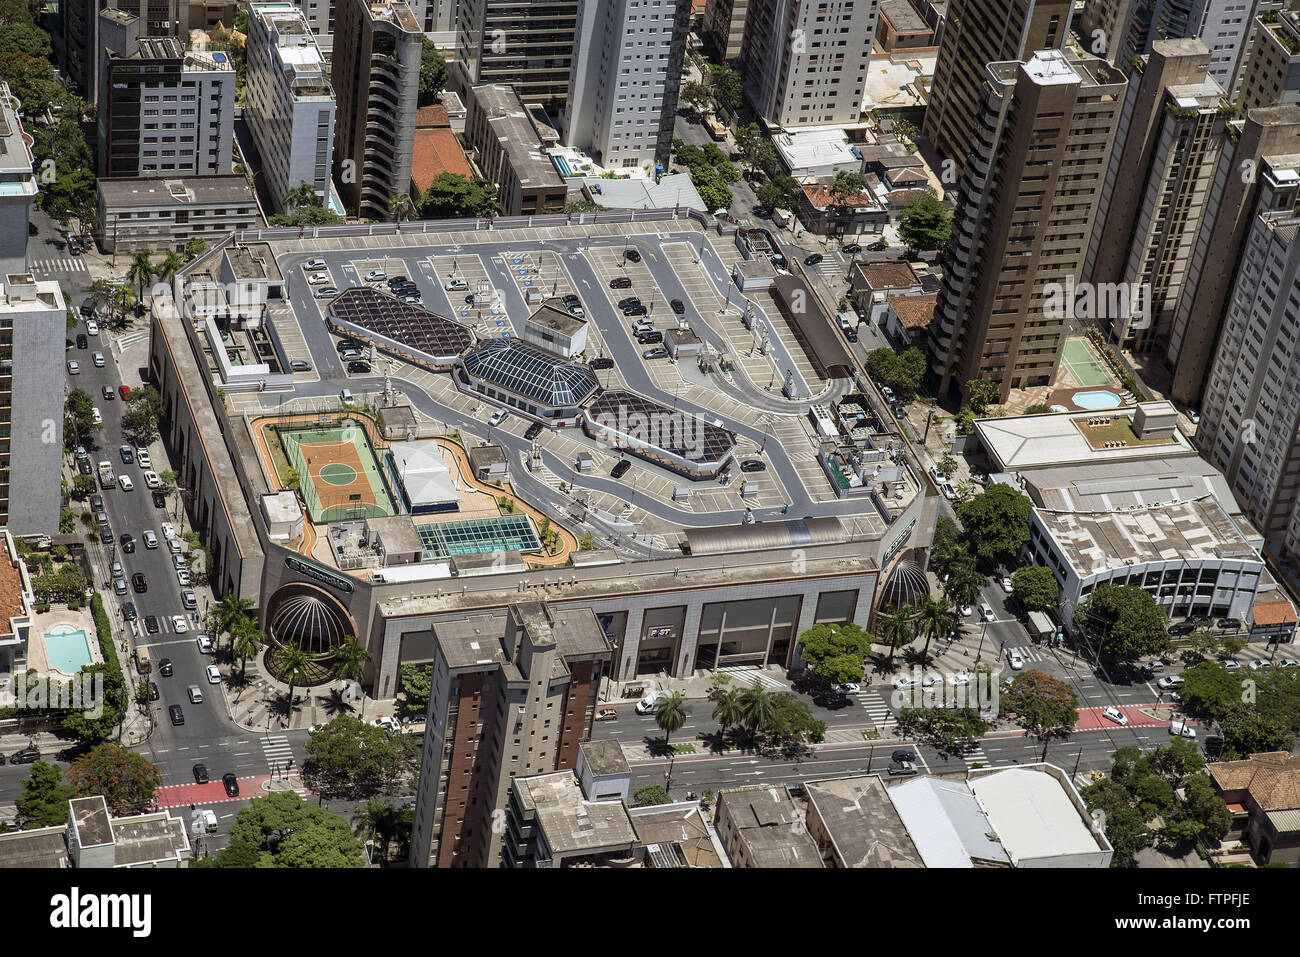 Aerial view of Shopping Center - Neighborhood Lourdes - Stock Image